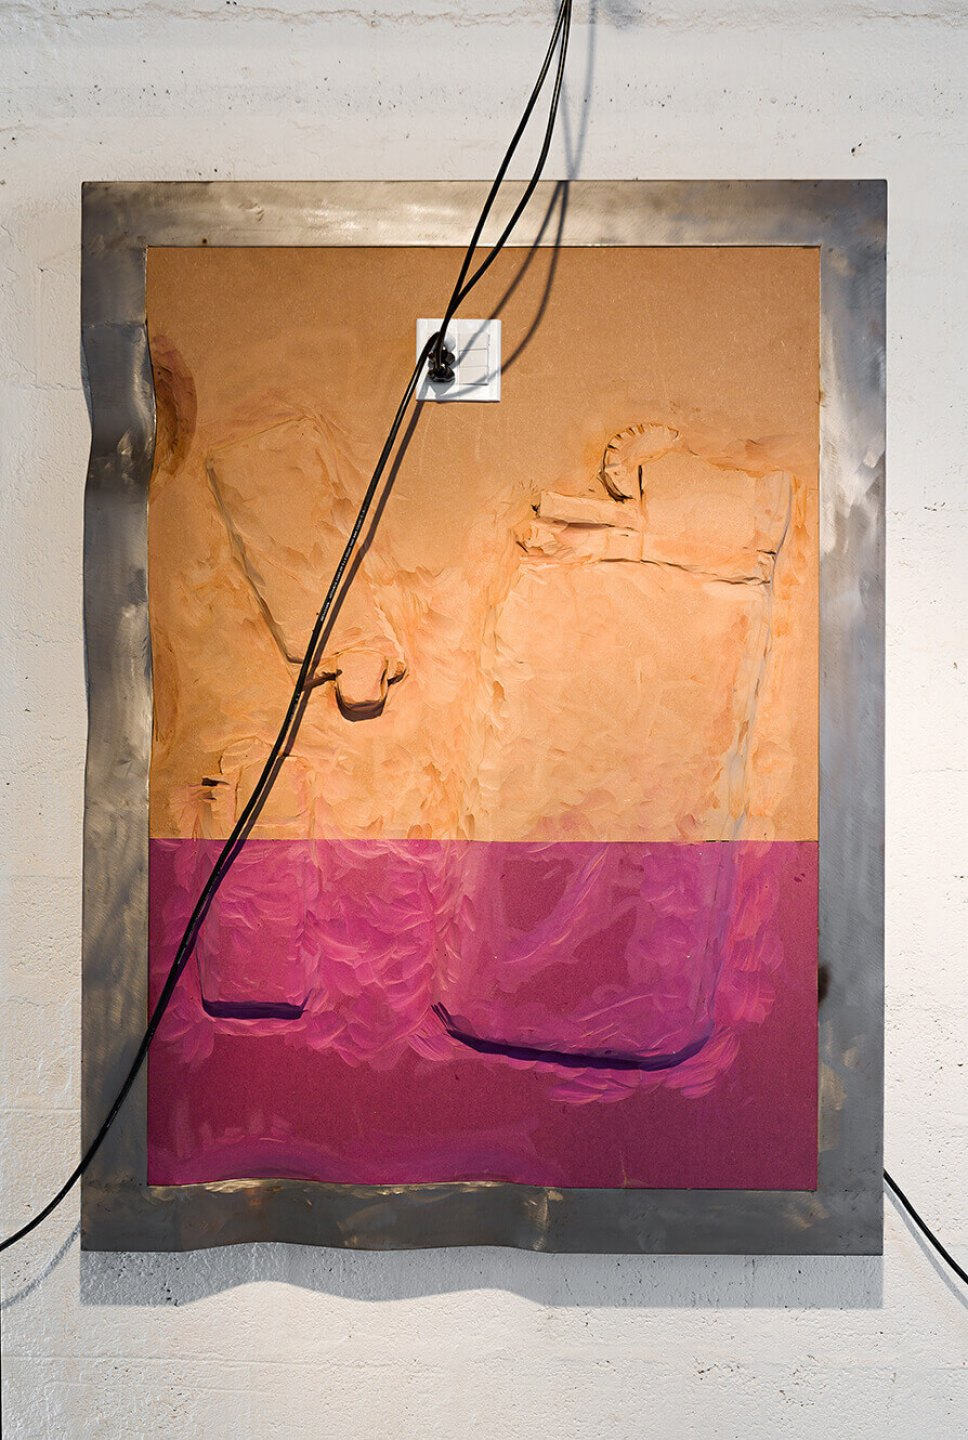 Neïl Beloufa, <em>Two big hair dryer, from Vintage series,</em> 2014, MDF and metal, 160 × 120 × 10 cm - Mendes Wood DM